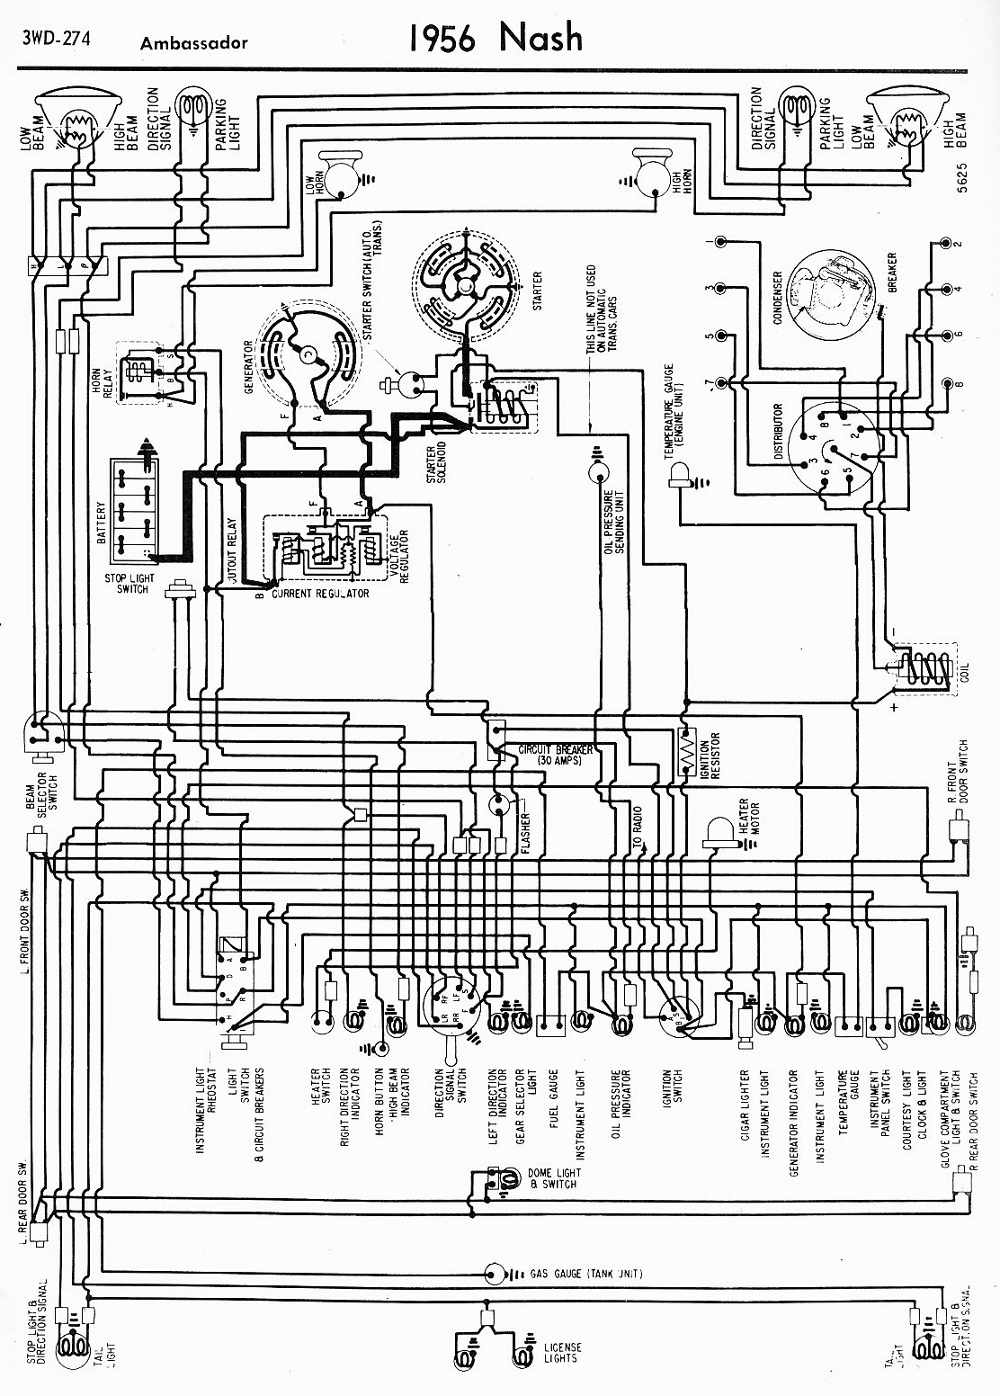 Wiring Diagram of 1956 Nash Ambassador